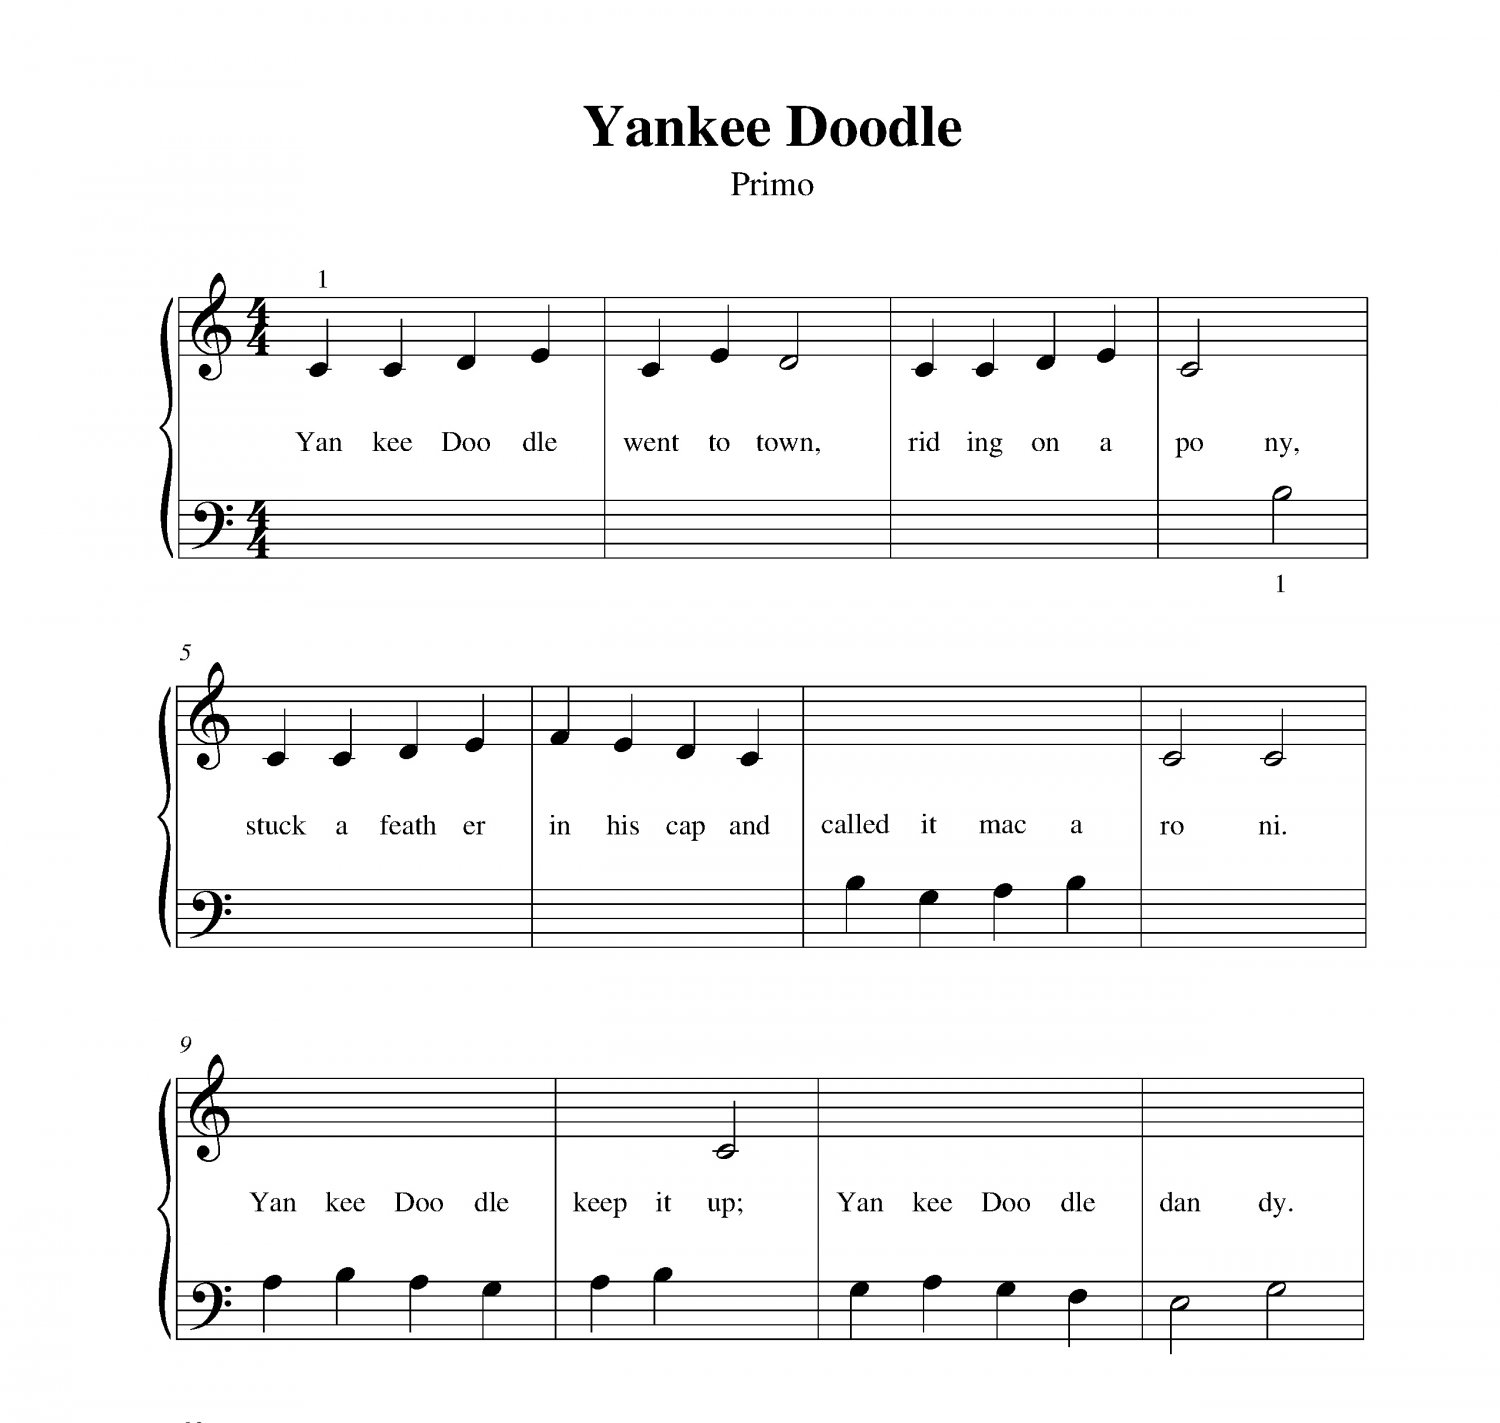 Full Theme Sheet Music Theoffice Us: Yankee Doodle